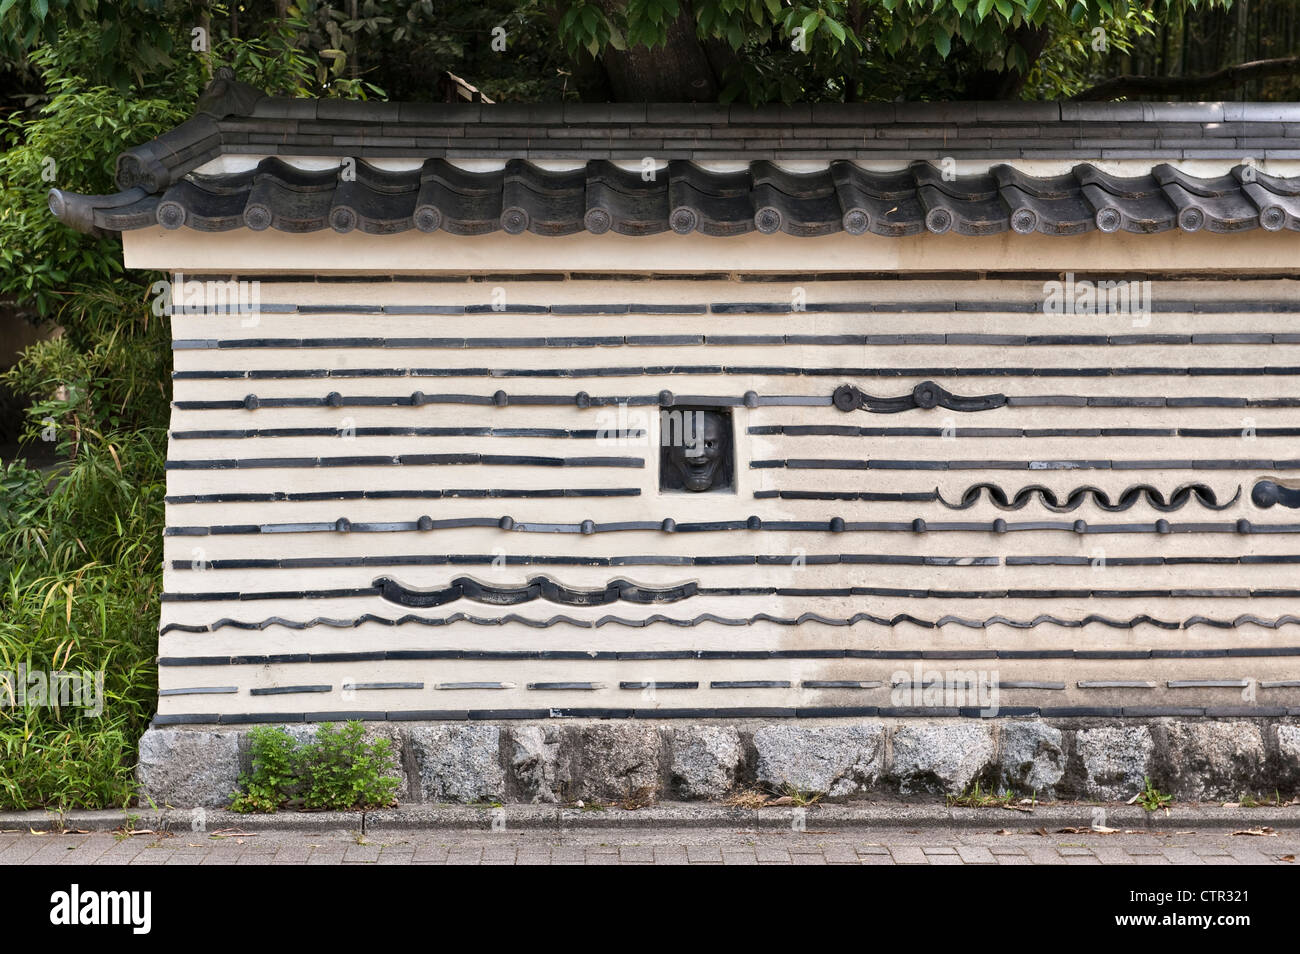 Kyoto, Japan. The wall surrounding Koto-in temple in the Daitoku-ji temple complex - Stock Image